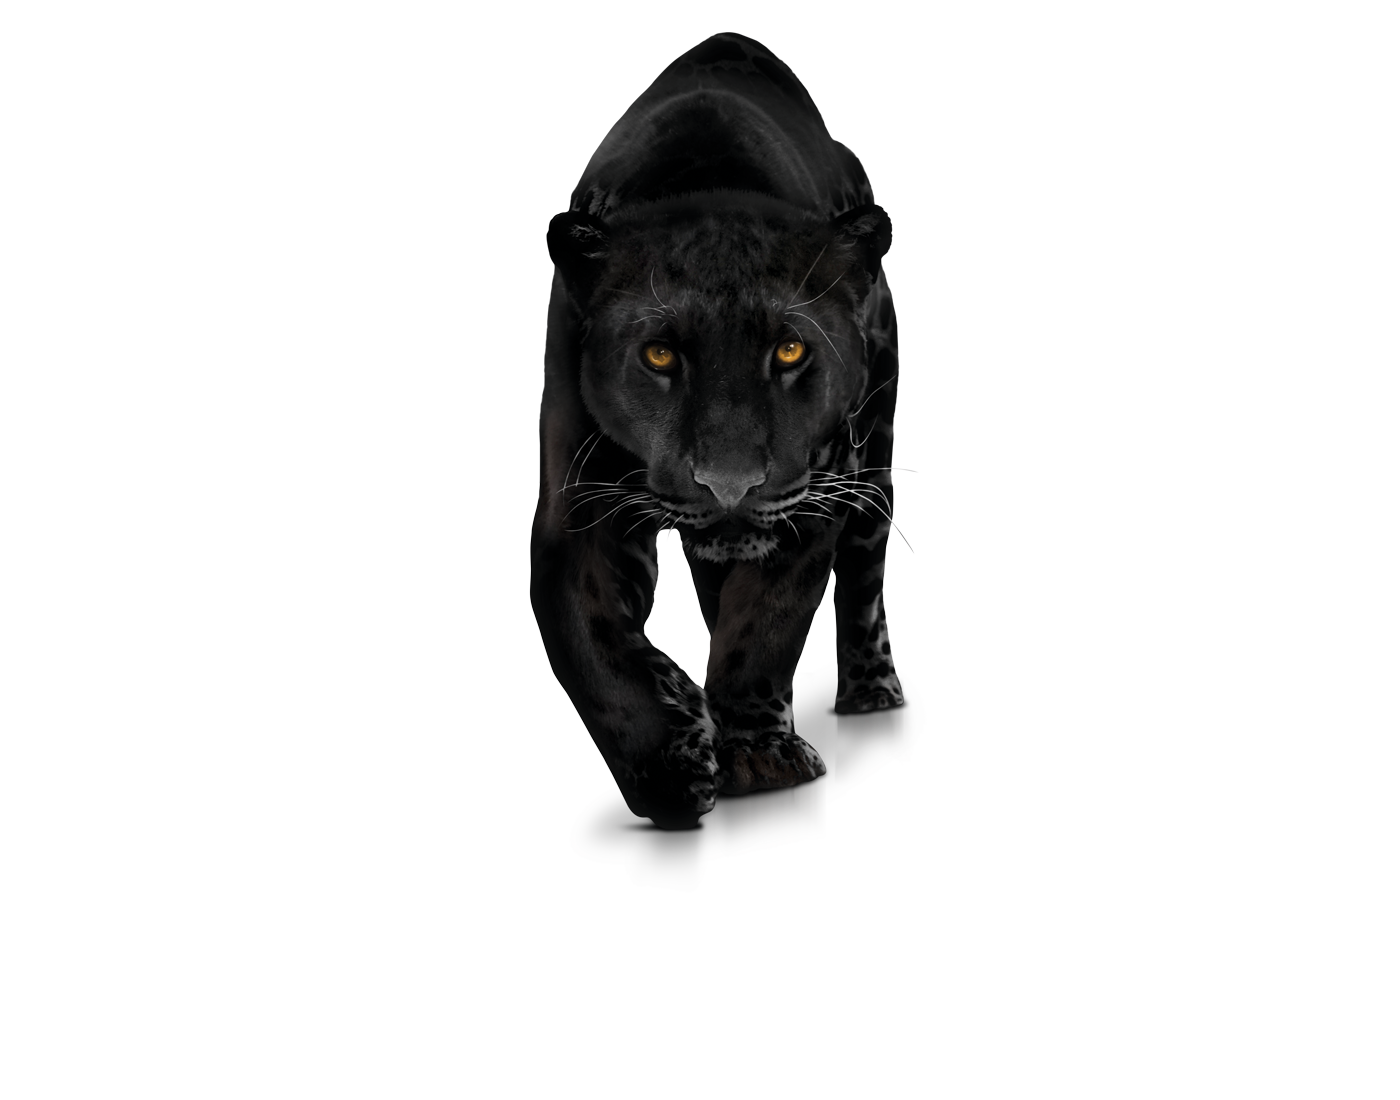 Png free images only. Panther transparent vector free download